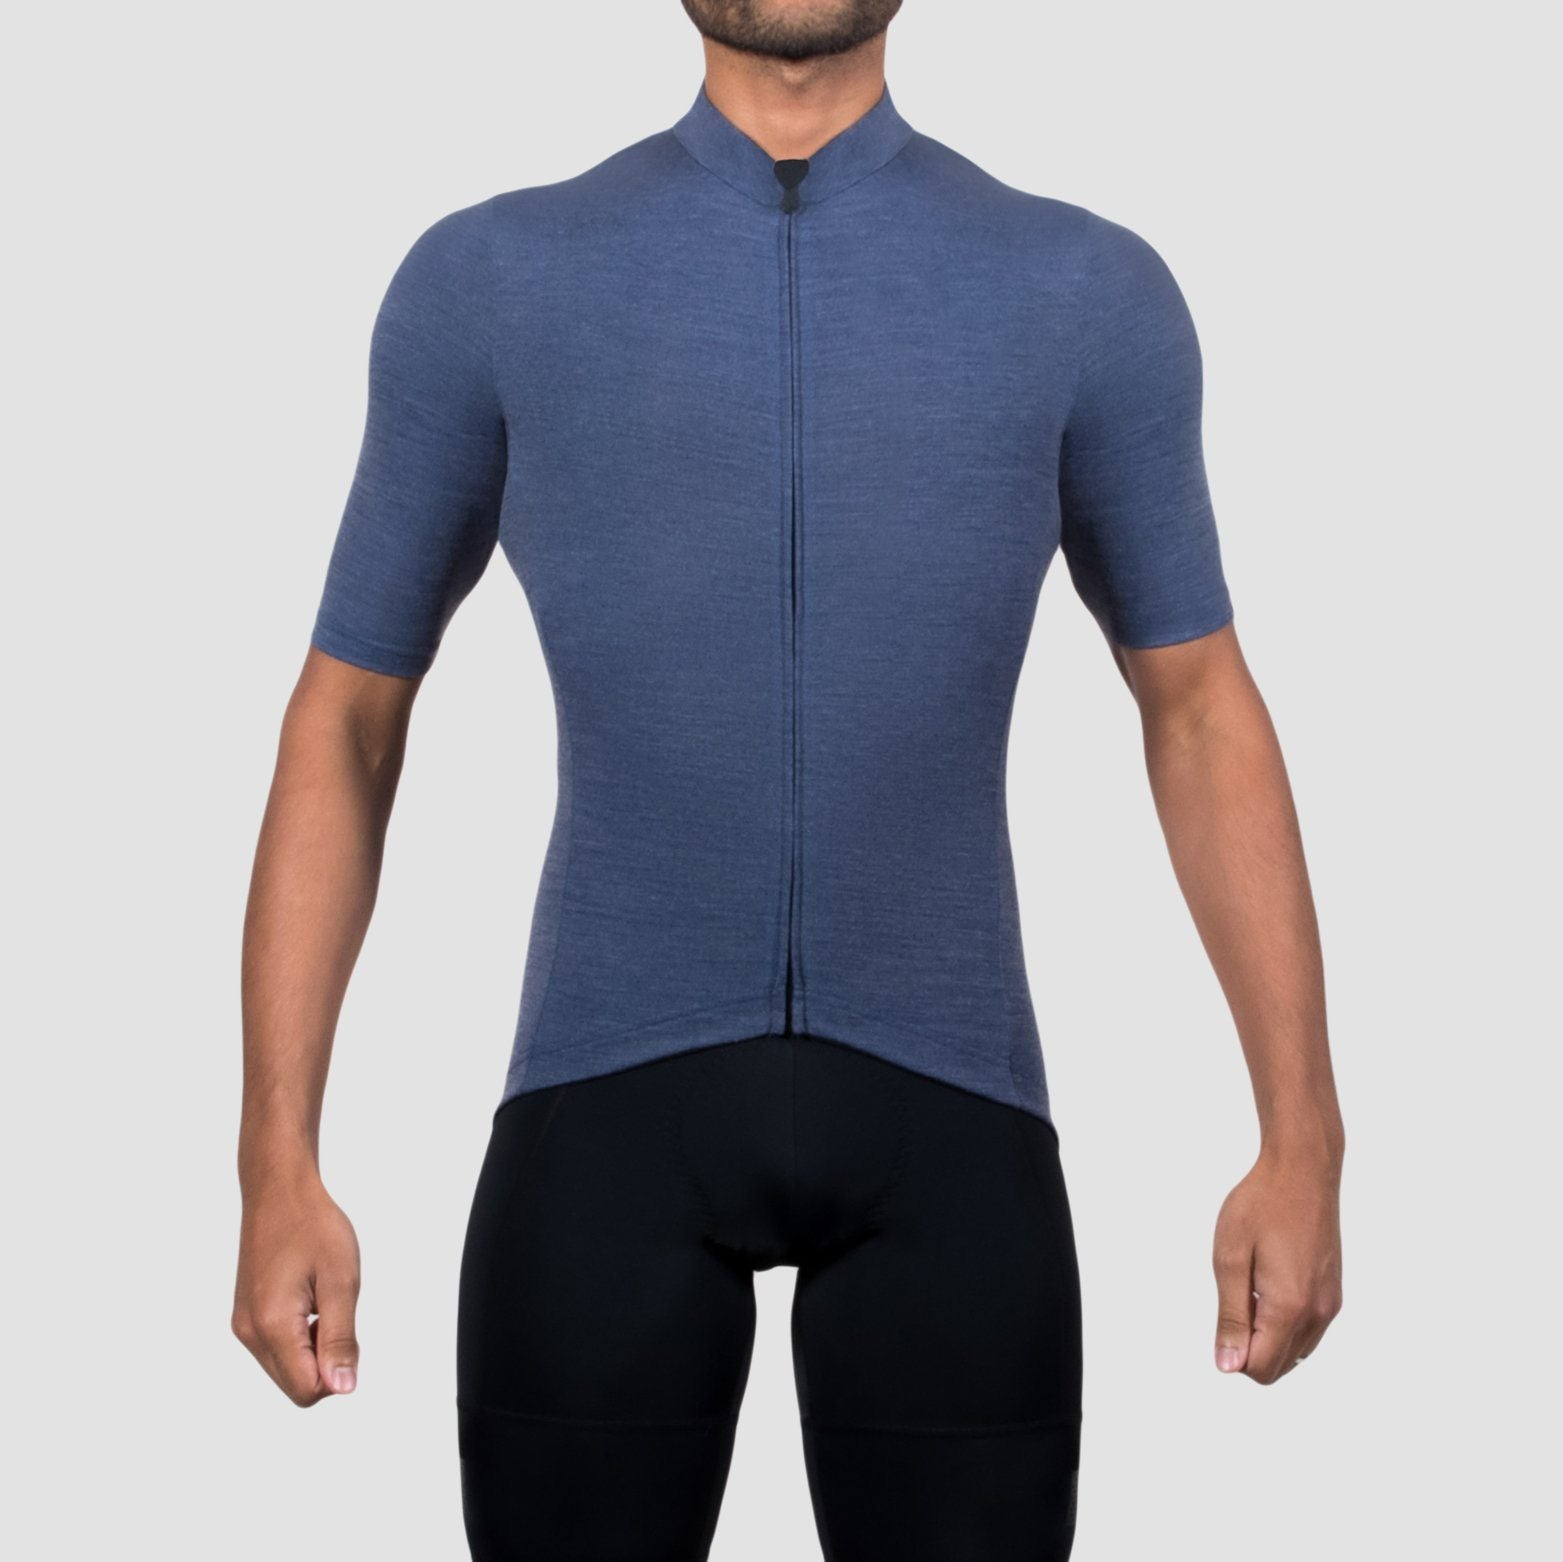 Men's EC Merino Jersey - Navy